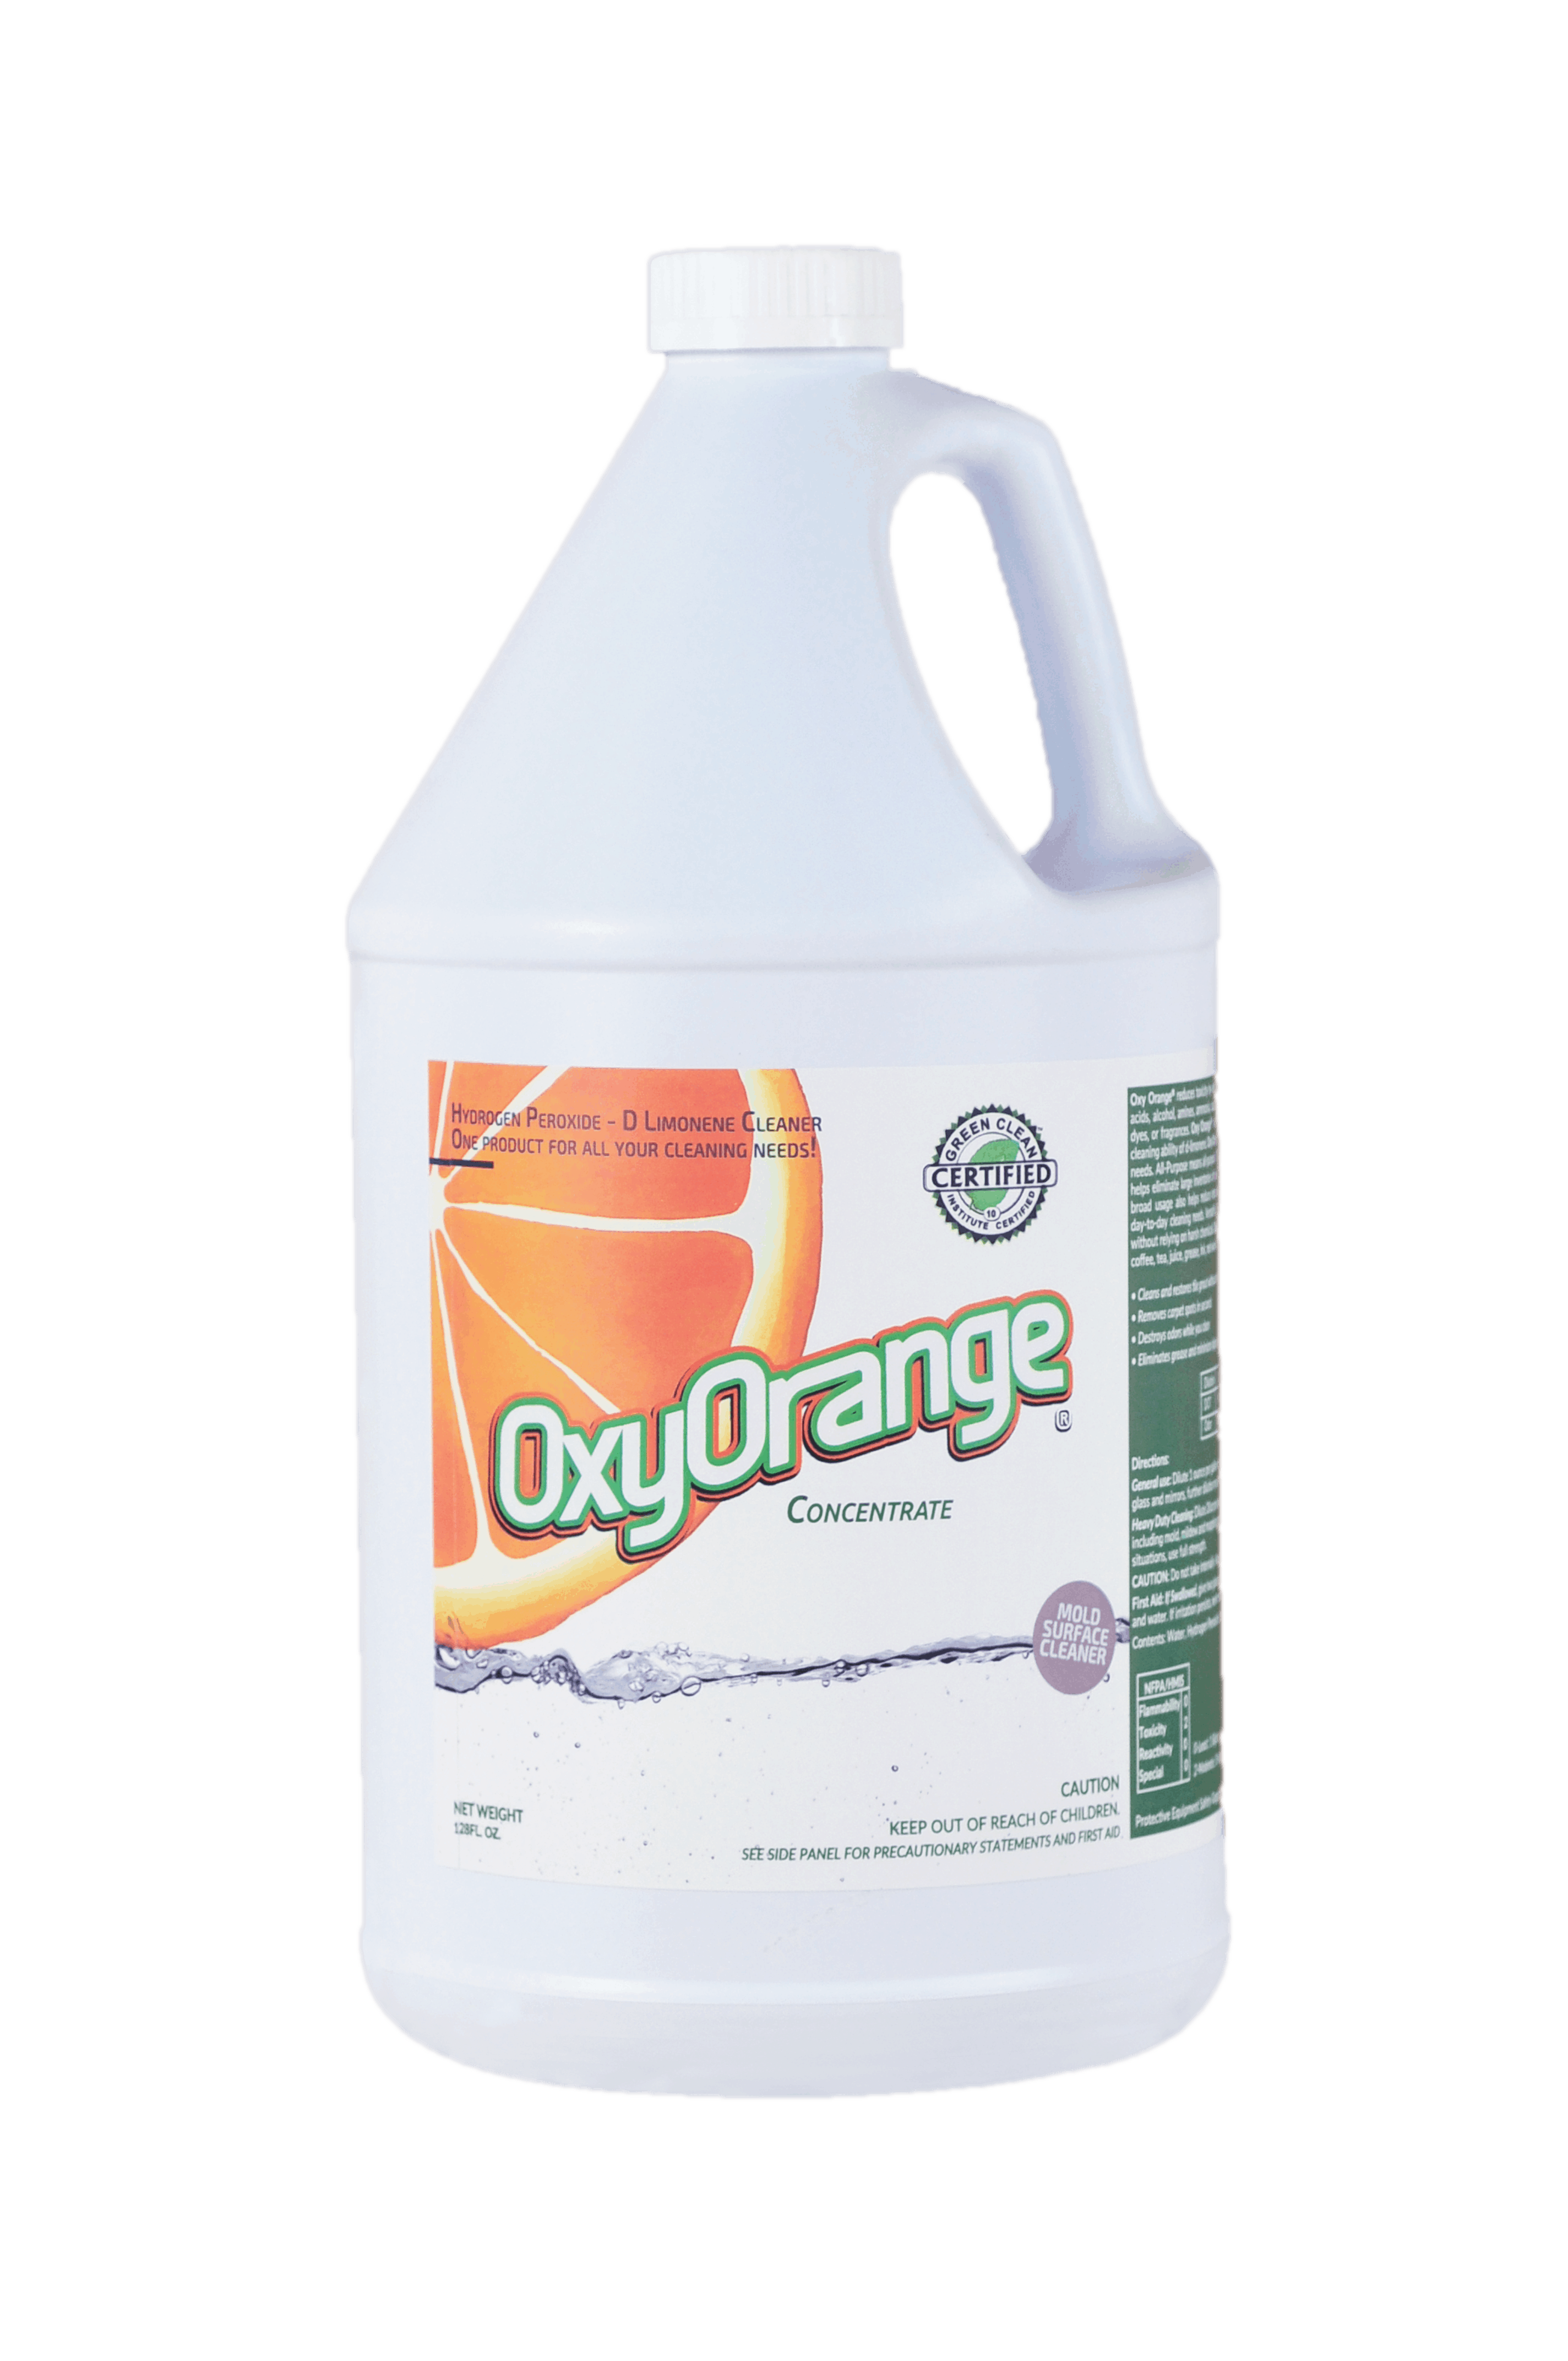 Oxy Orange target specific soils, stains, odors and cleans mold